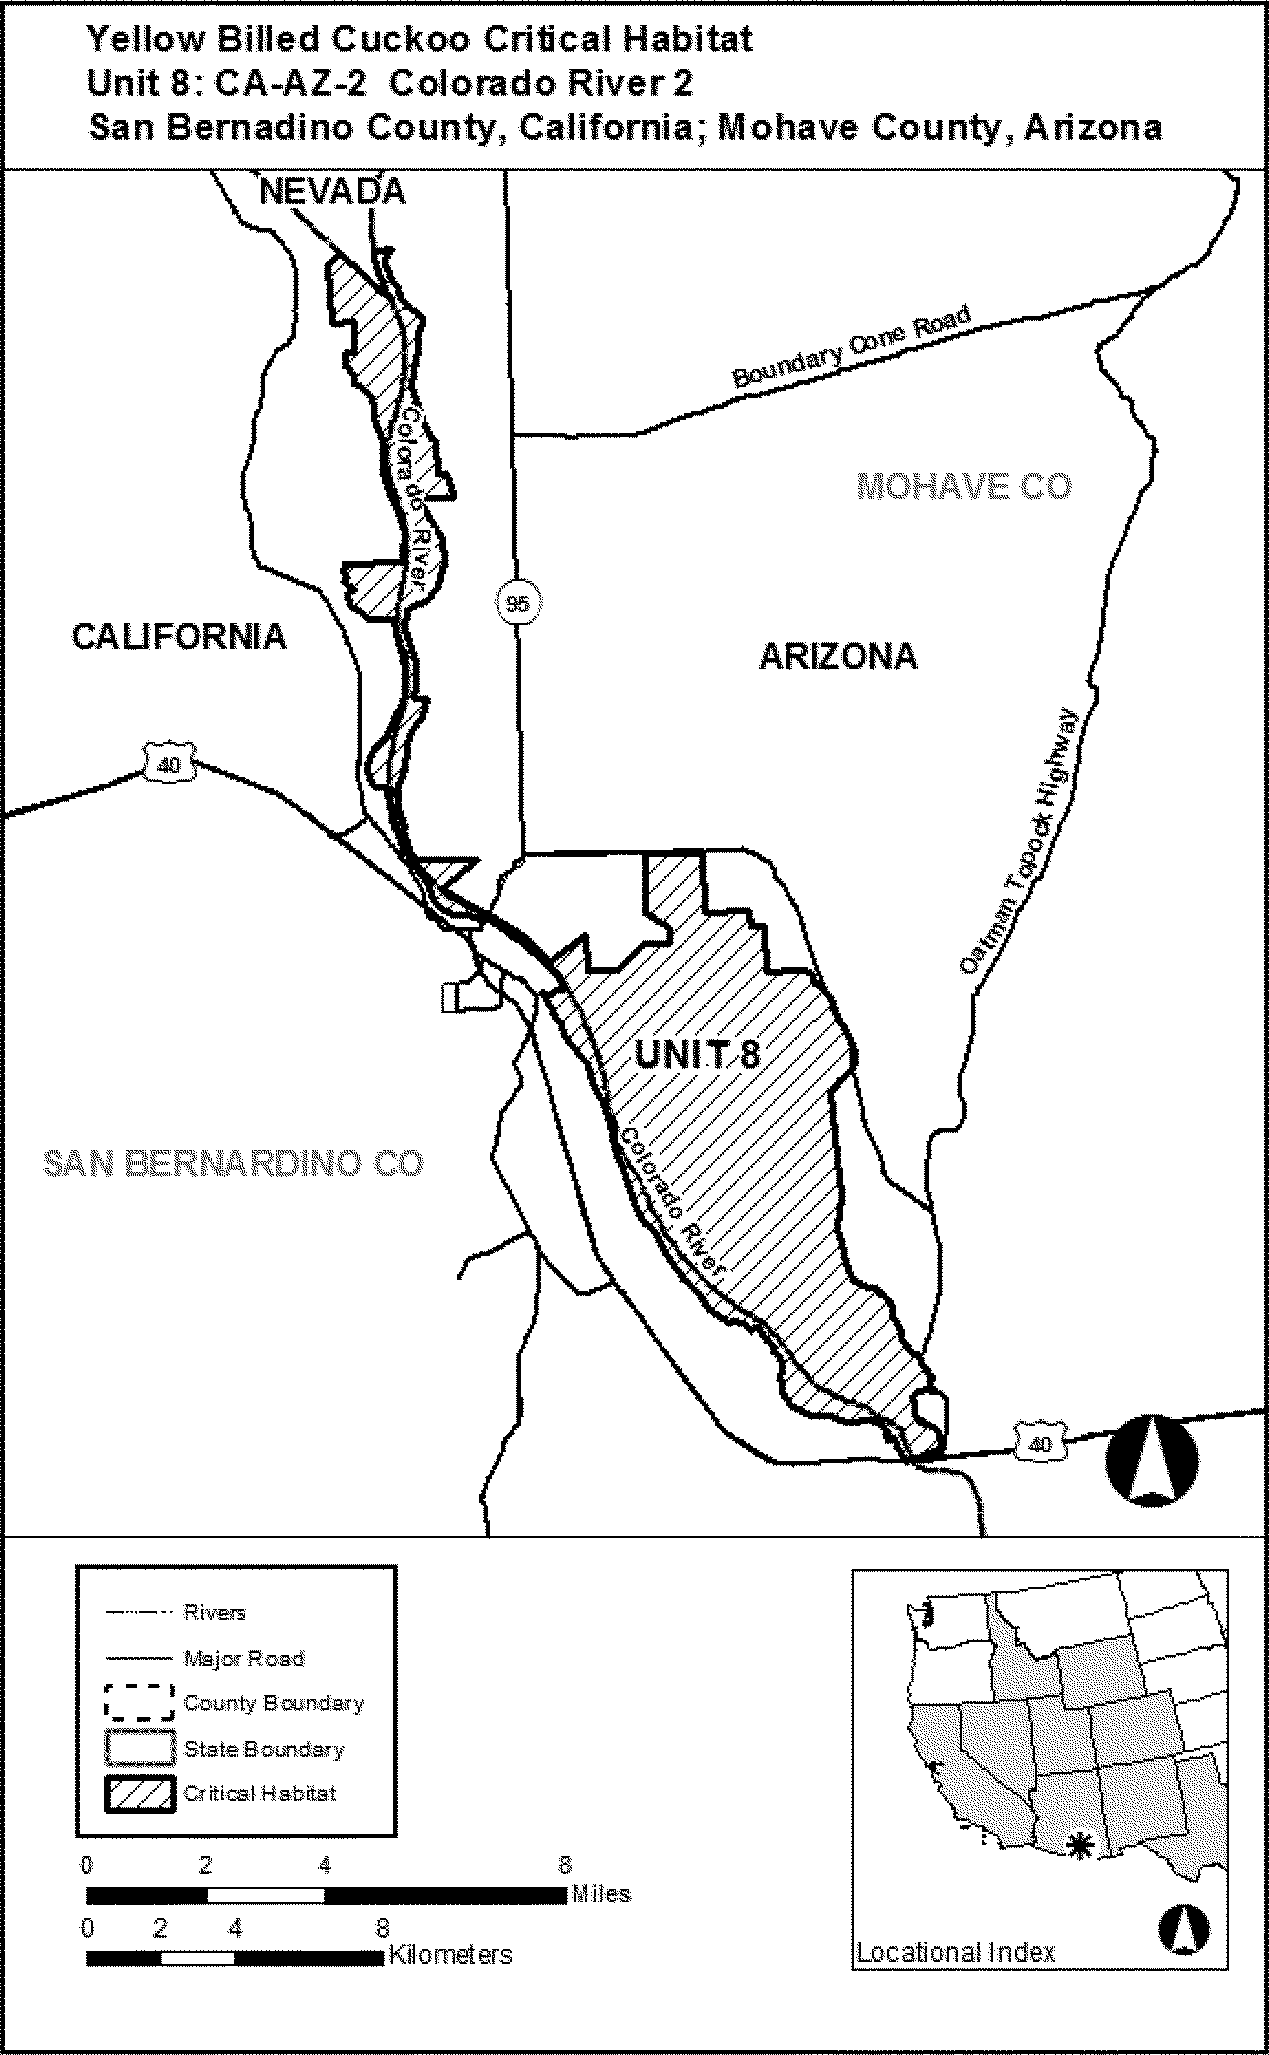 Map Of Unit 8 Arizona.Federal Register Endangered And Threatened Wildlife And Plants